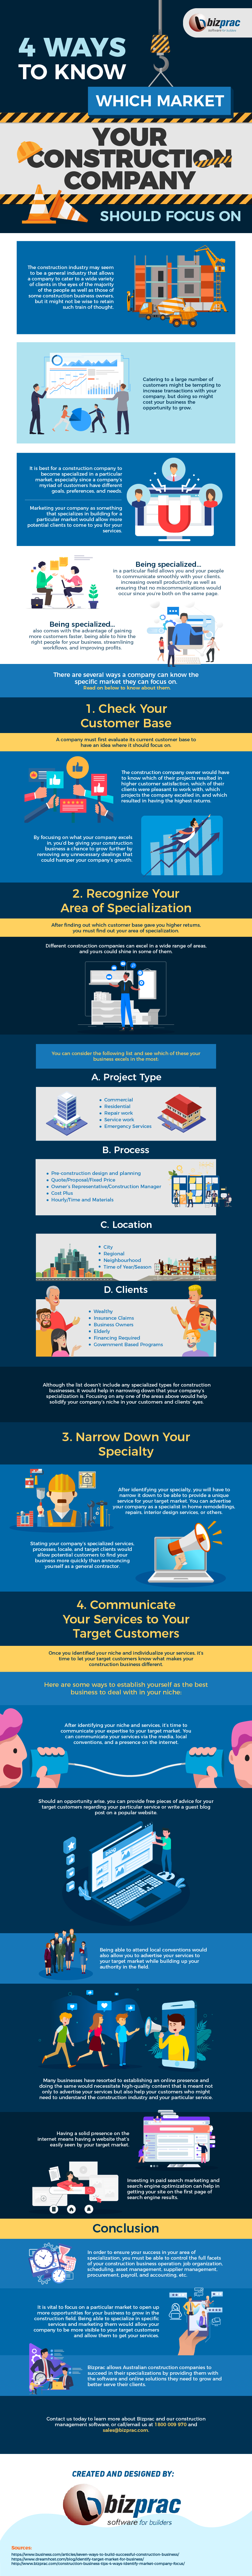 4 Ways to Know which Market Your Construction Company Should Focus On - Infographic